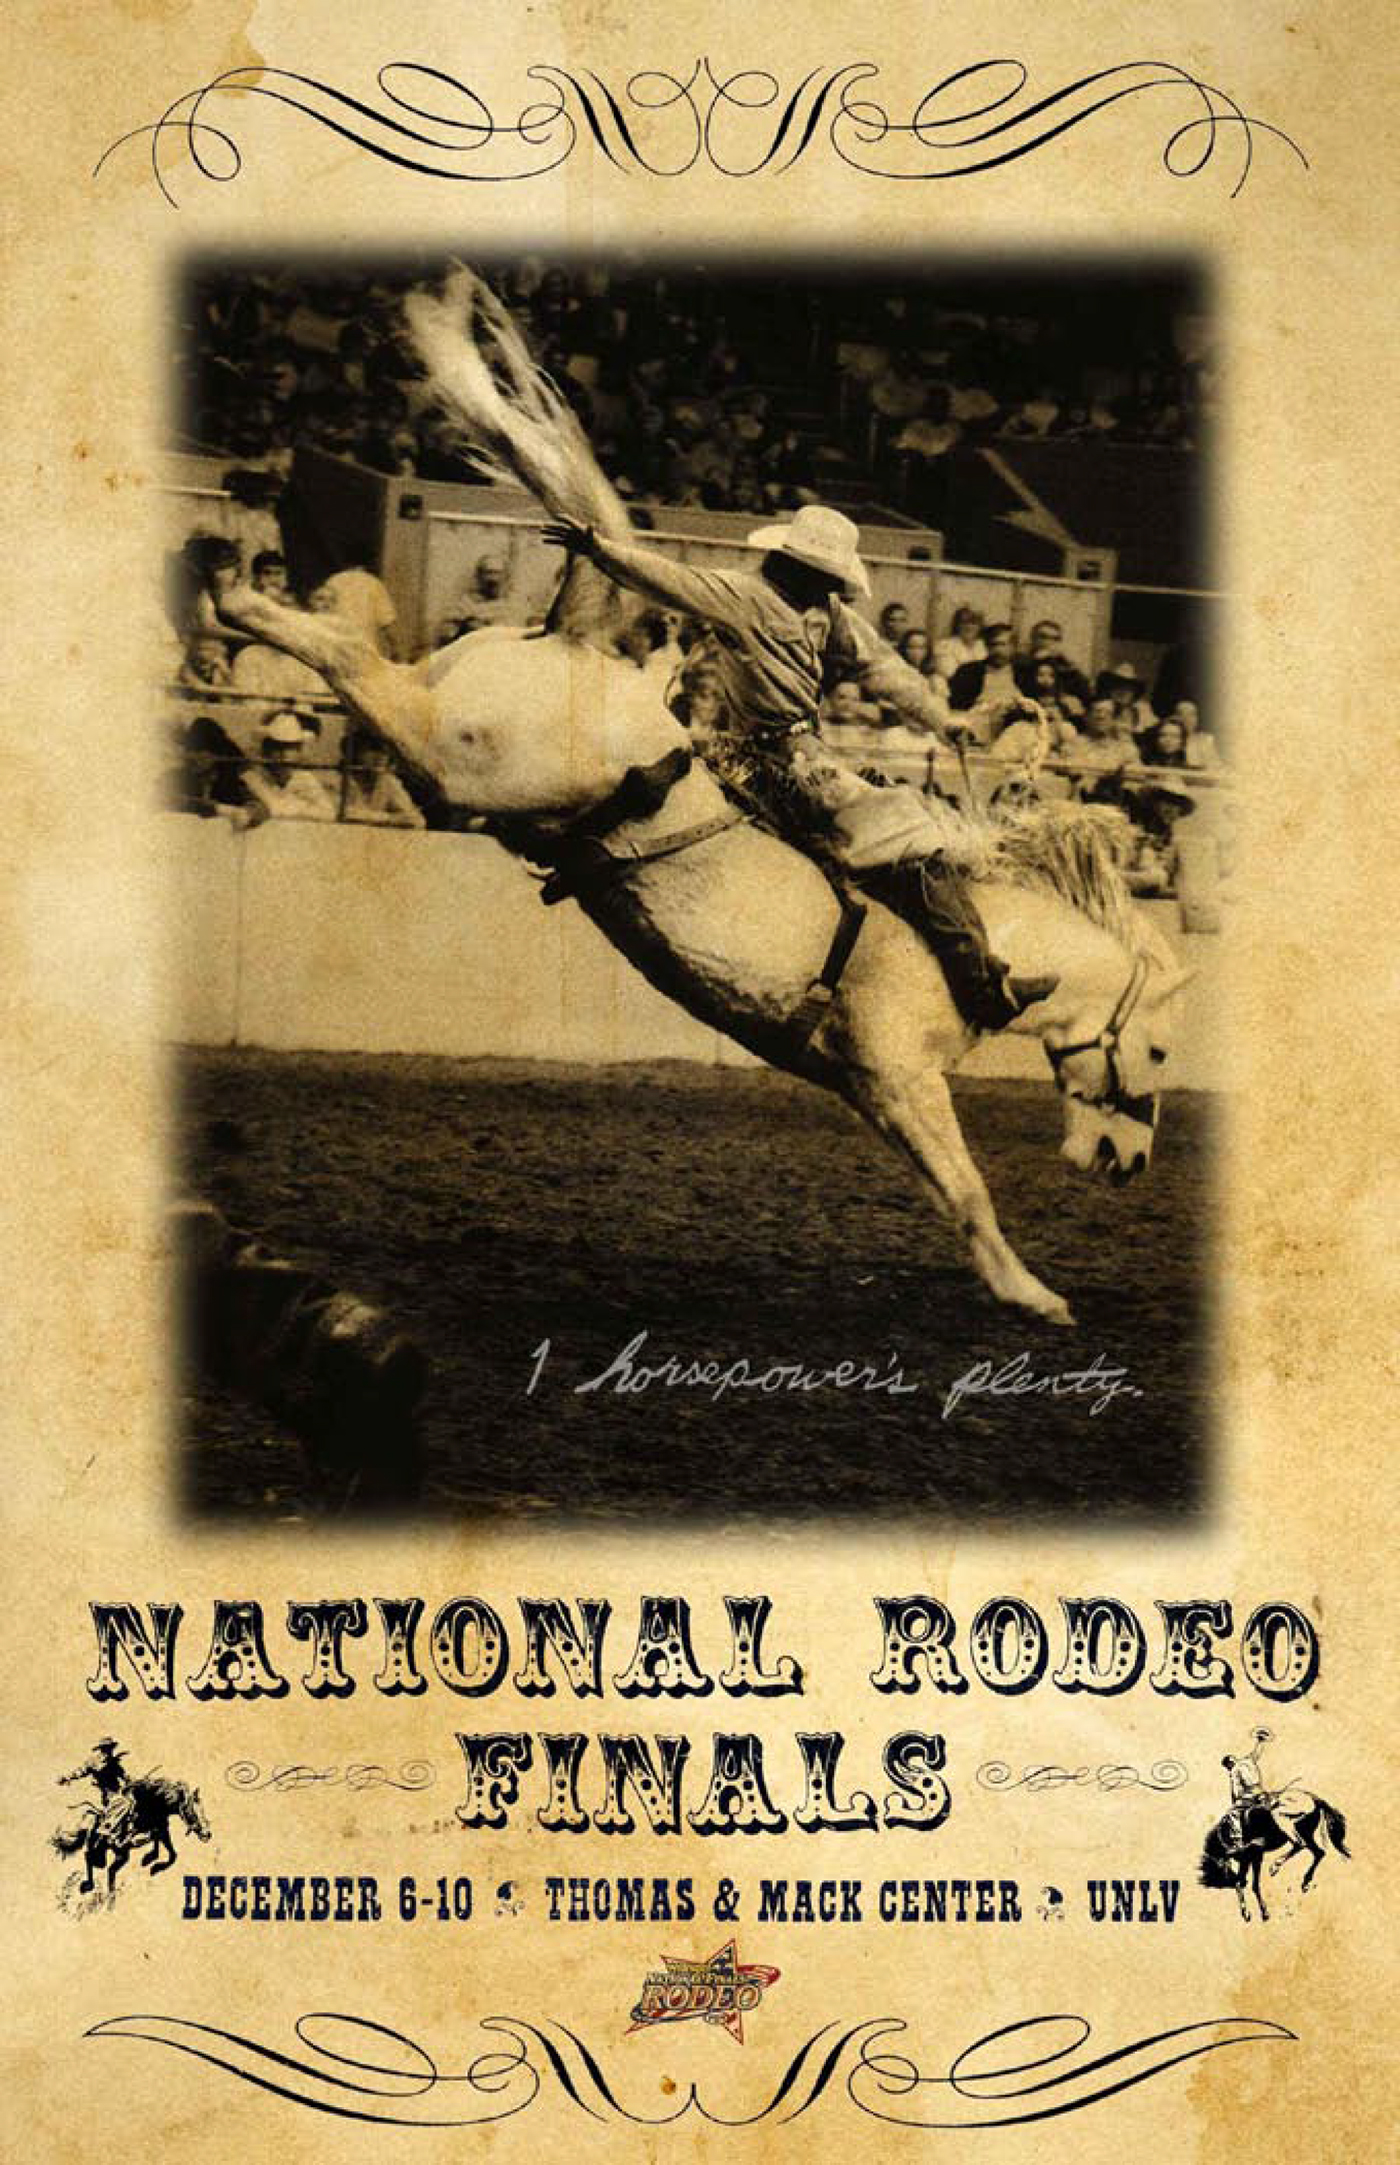 National Finals Rodeo Posters On Behance